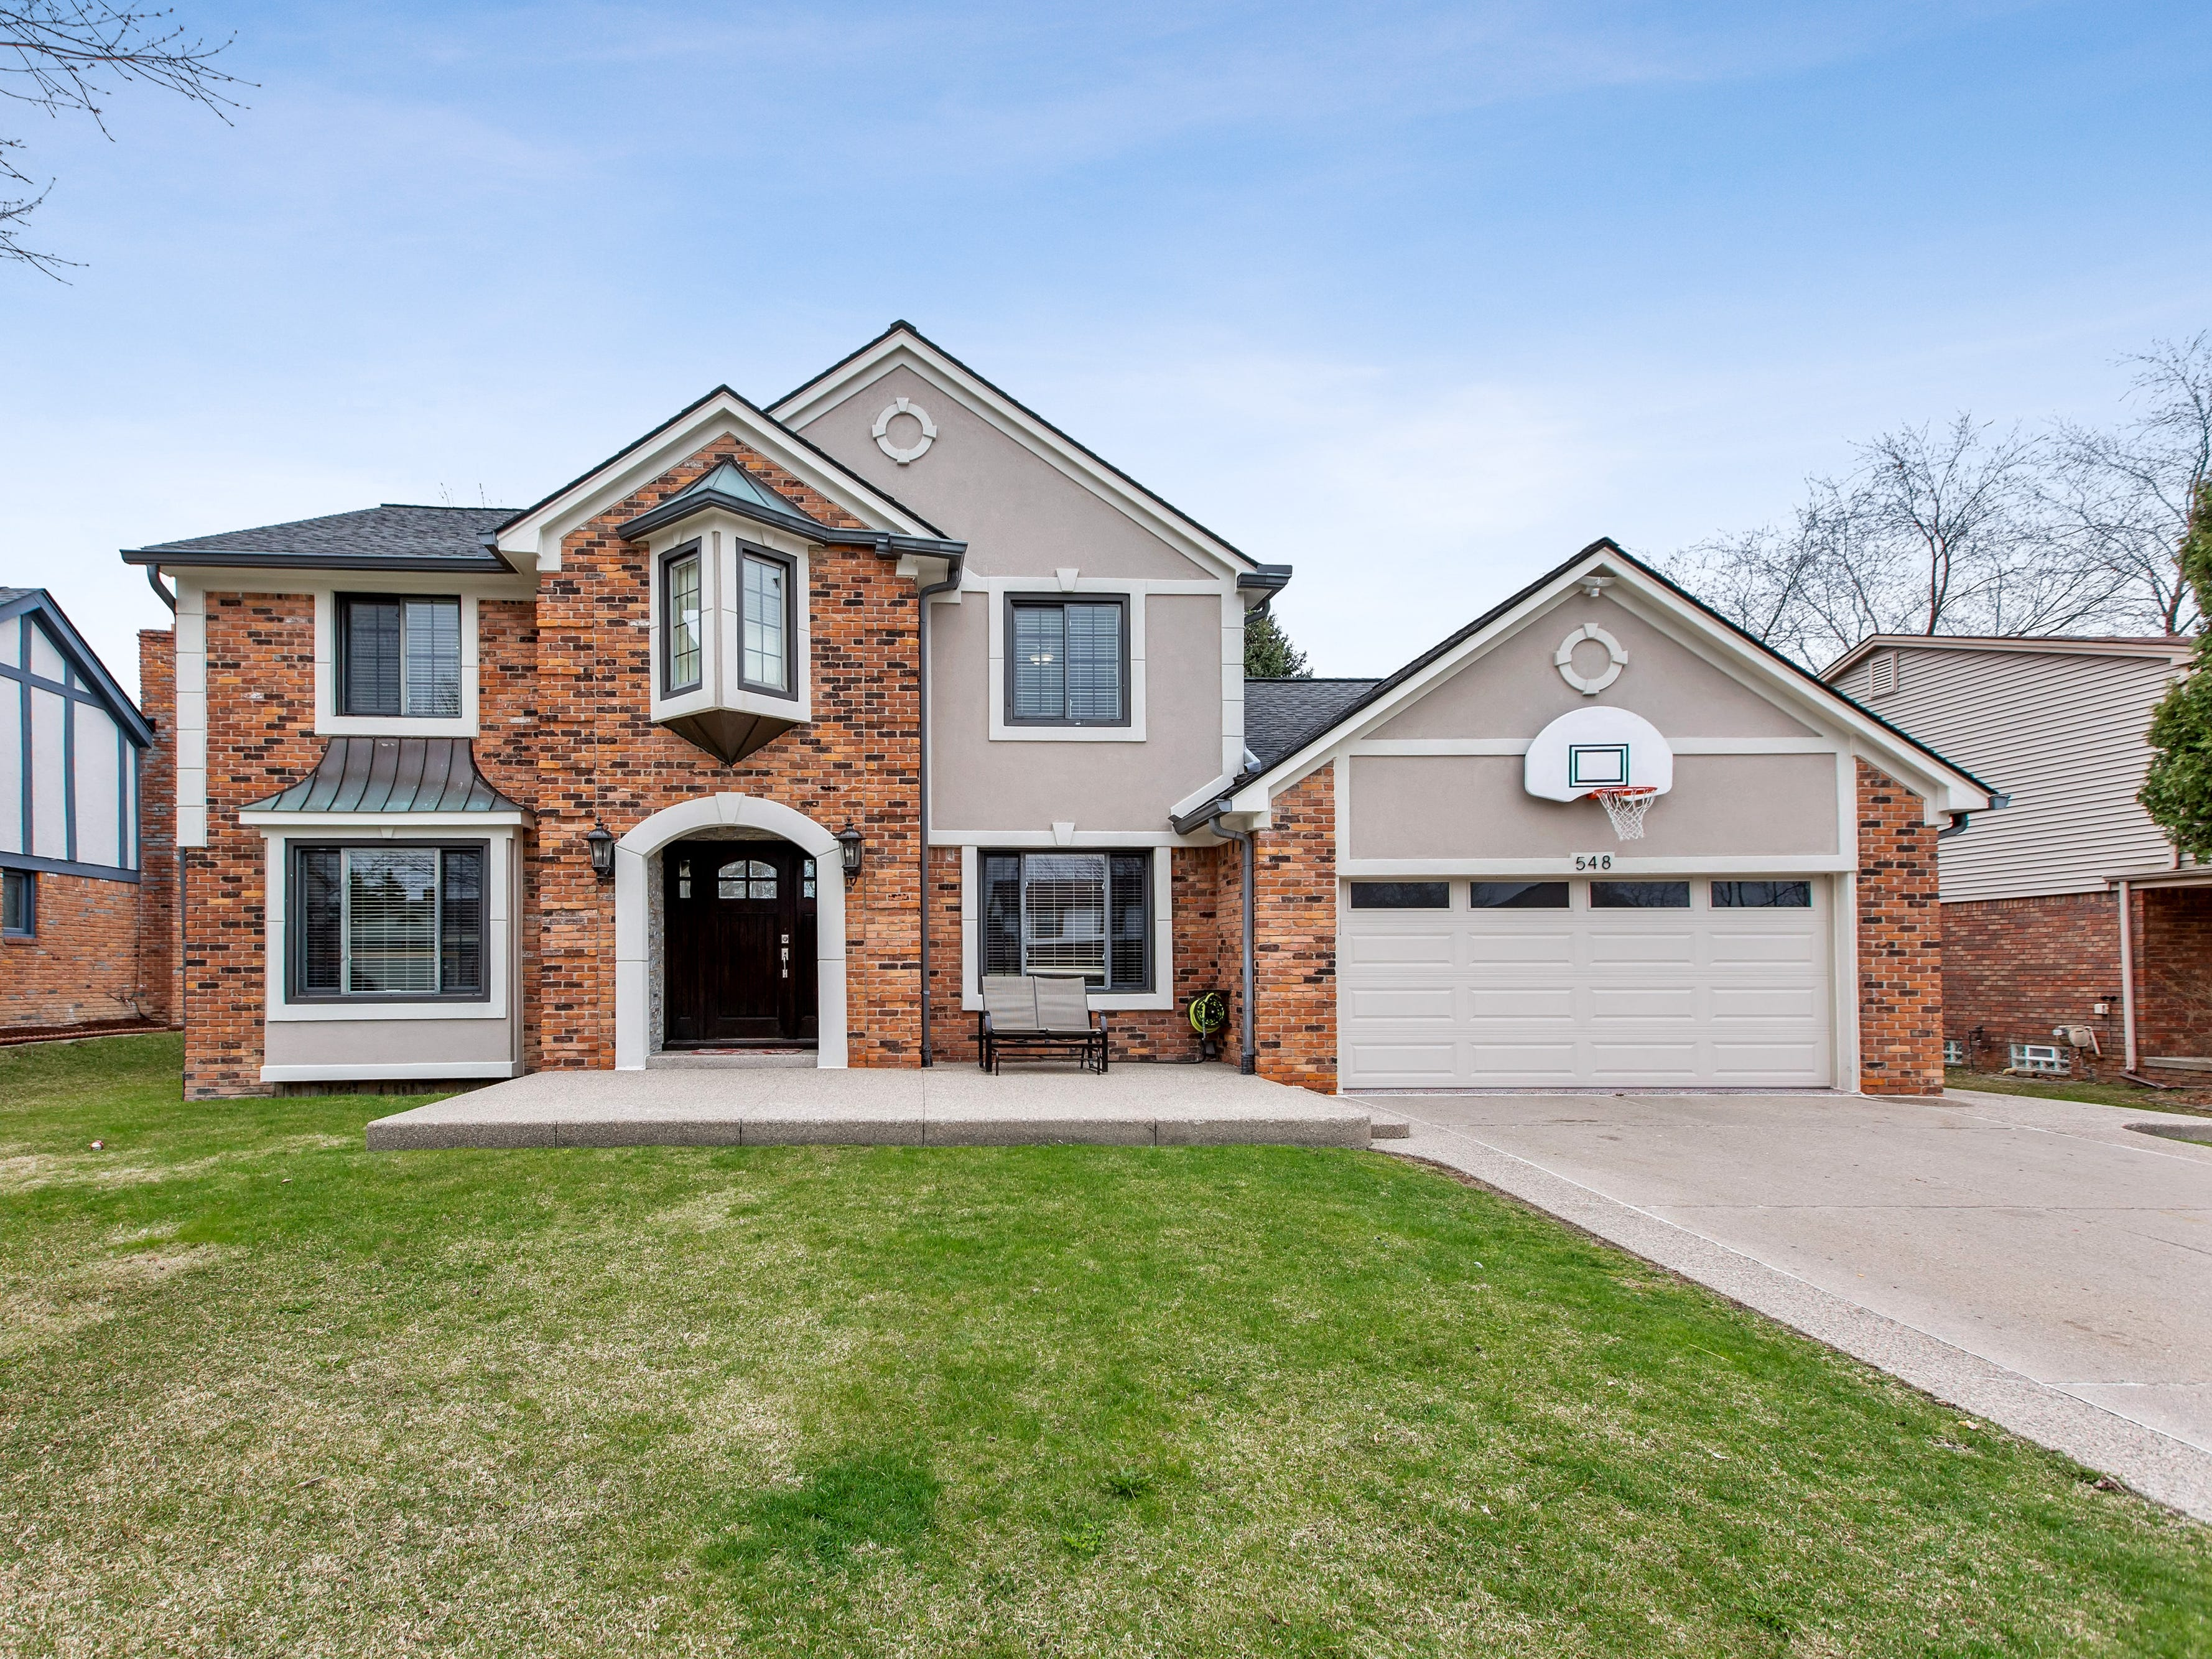 A customized colonial in Rochester Hills, designed with a heated garage that includes a second kitchen, is being offered for sale at $419,900.